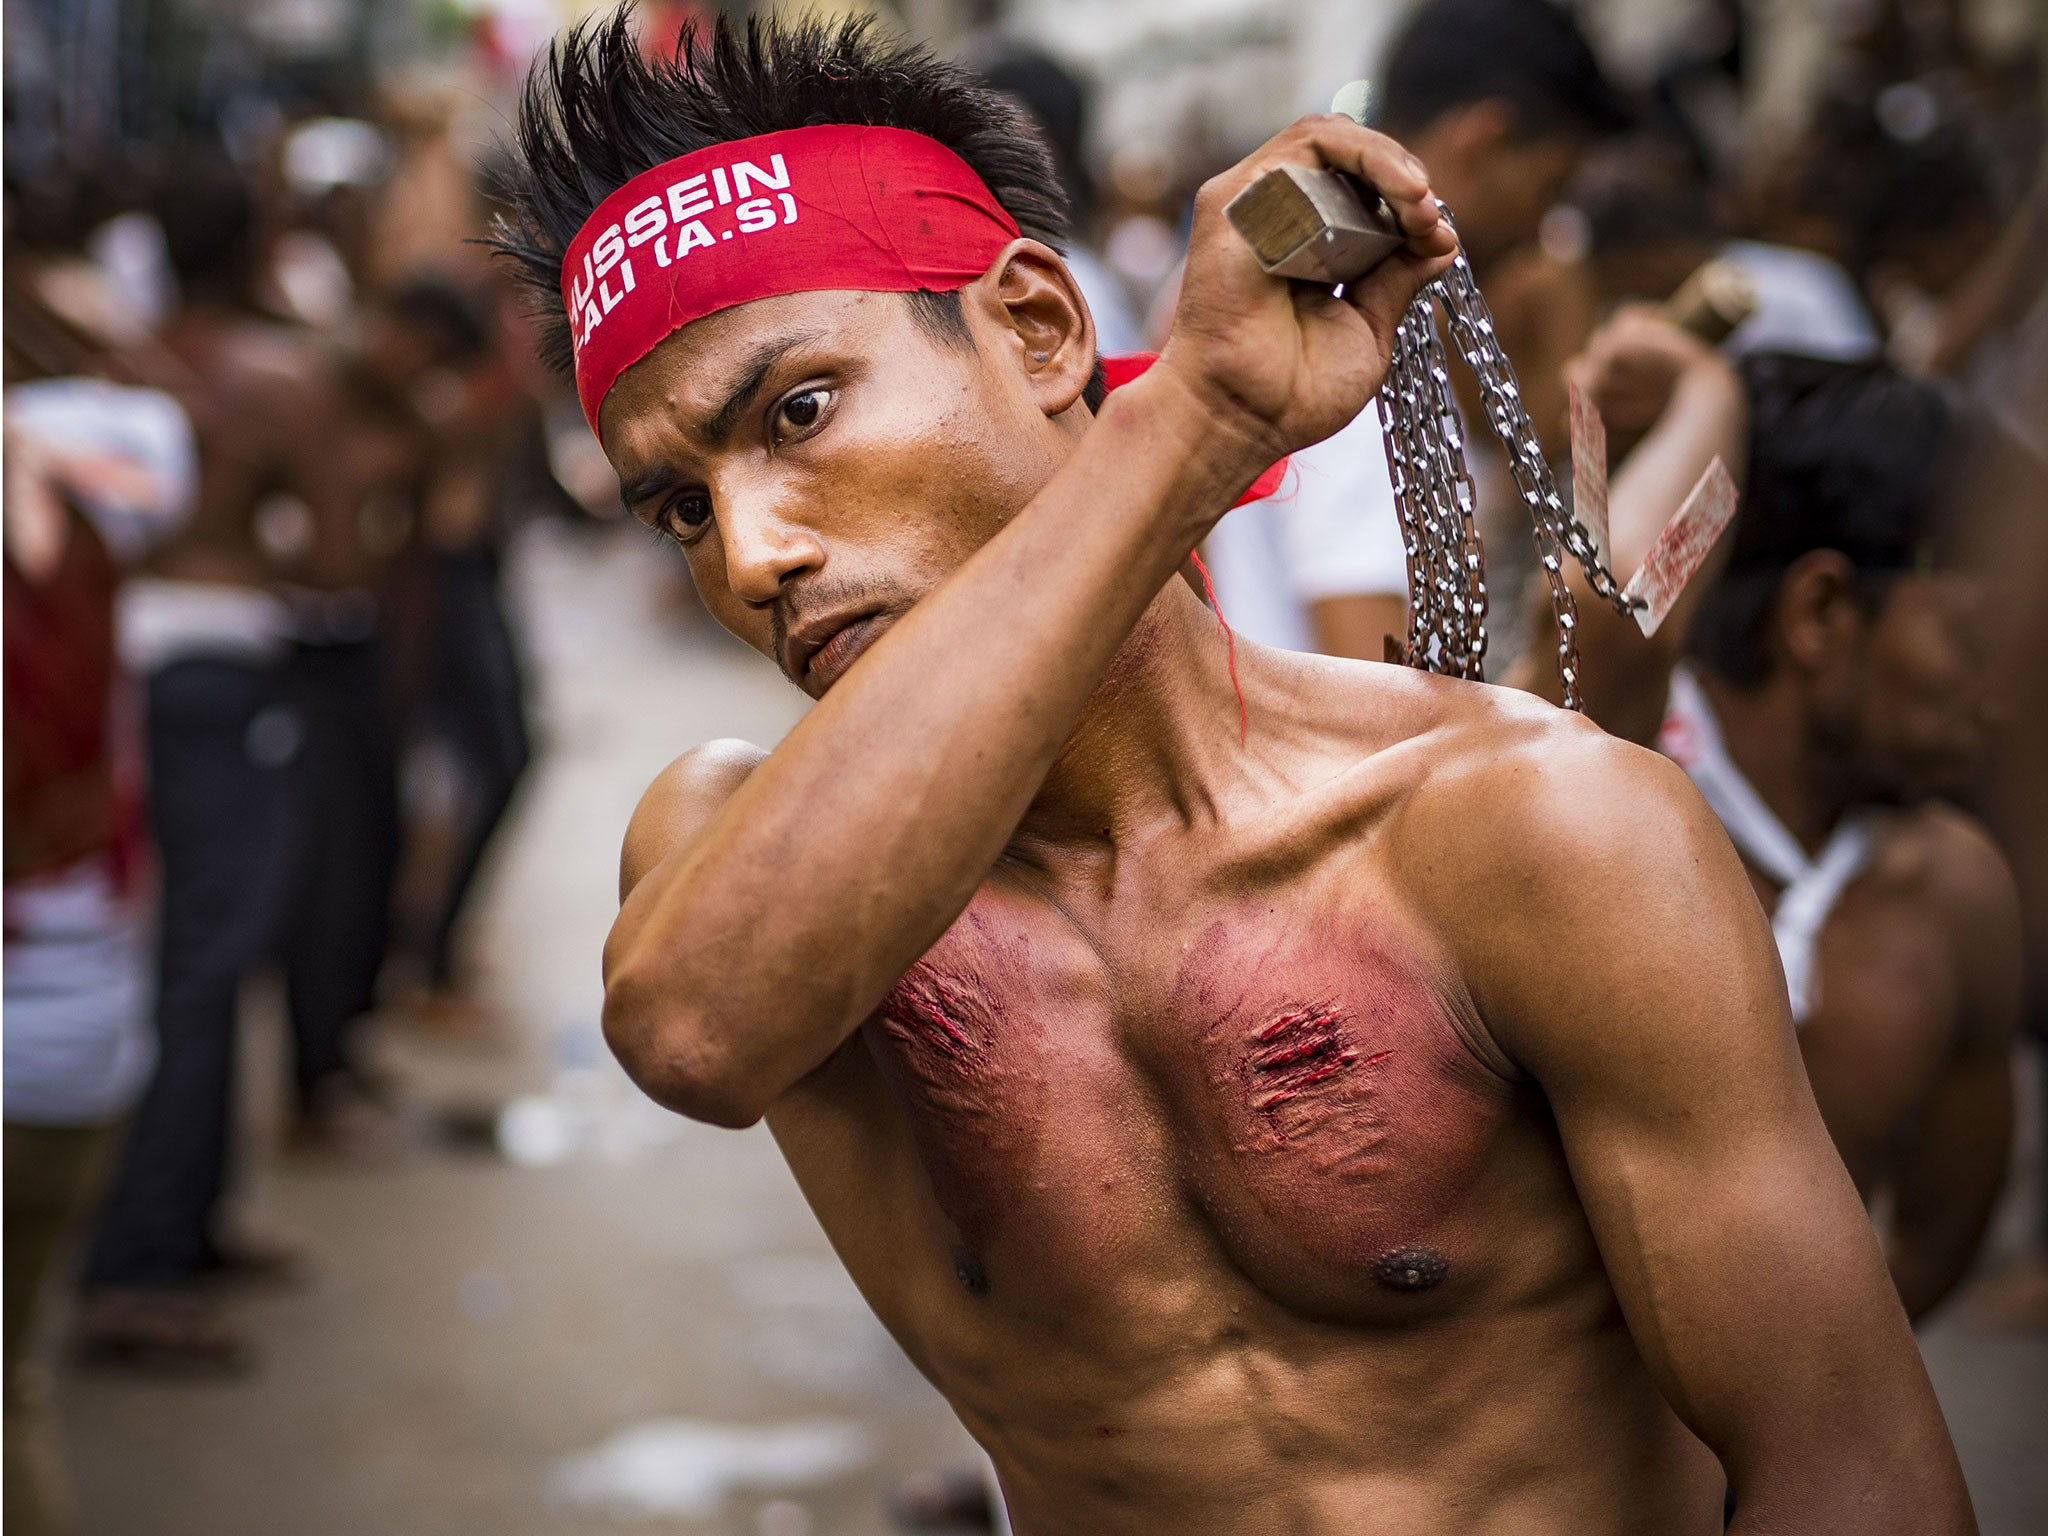 Shia Muslims slash and whip themselves to mourn the death of Prophet